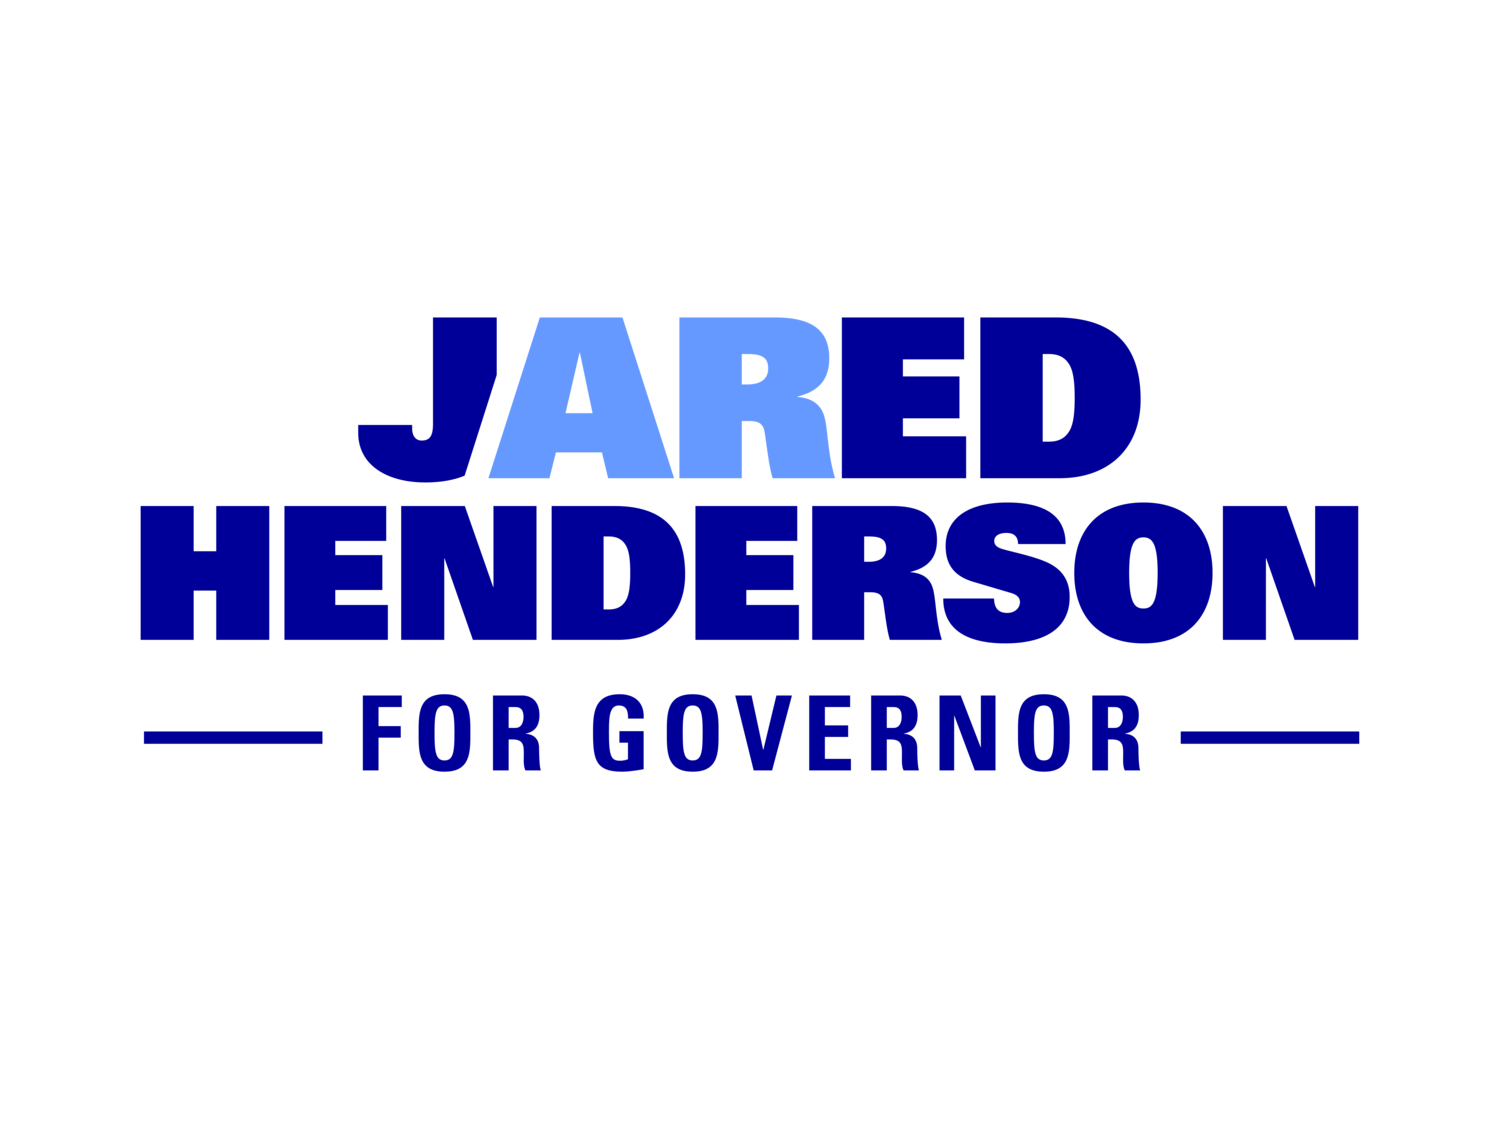 Jared Henderson for Governor